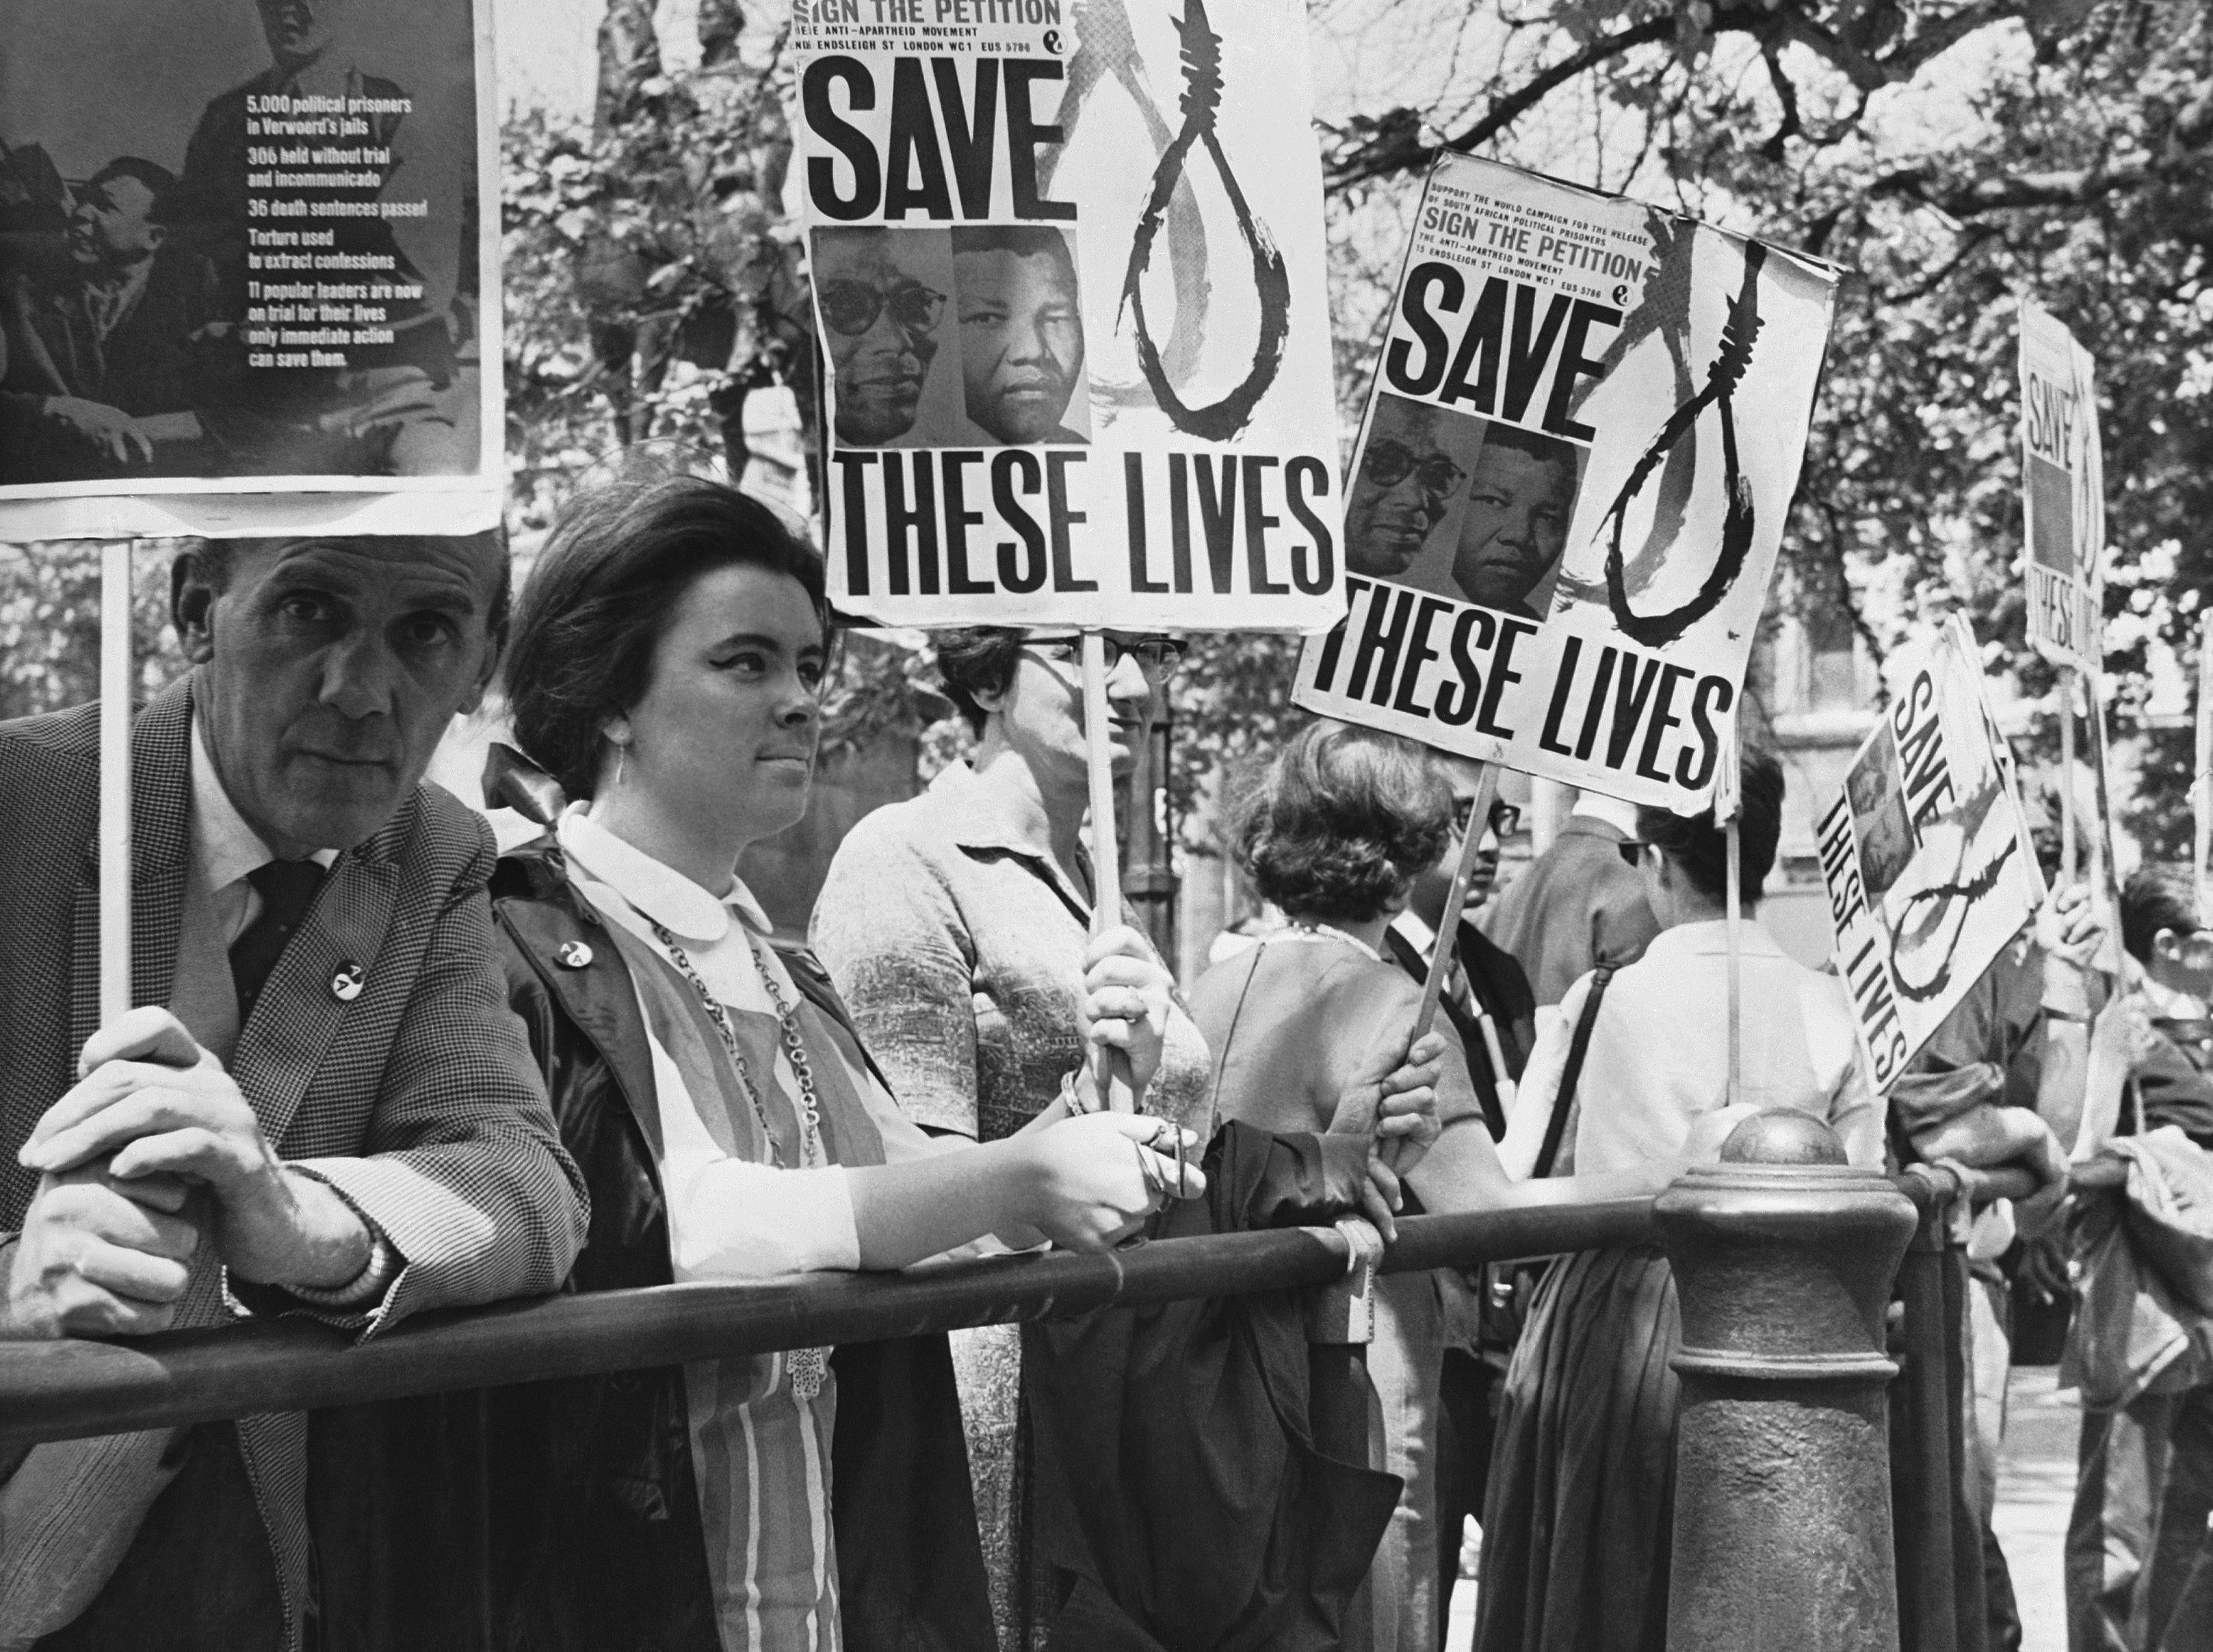 Anti-apartheid demonstrators gather outside the South African Embassy in Trafalgar Square, London, June 12, 1964, in protest against the sentence to life imprisonment of Nelson Mandela, former chief of the banned African National Congress. Mandela, 46, and seven other defendants were found guilty in the South African treason trial in Pretoria. They were sentenced today.